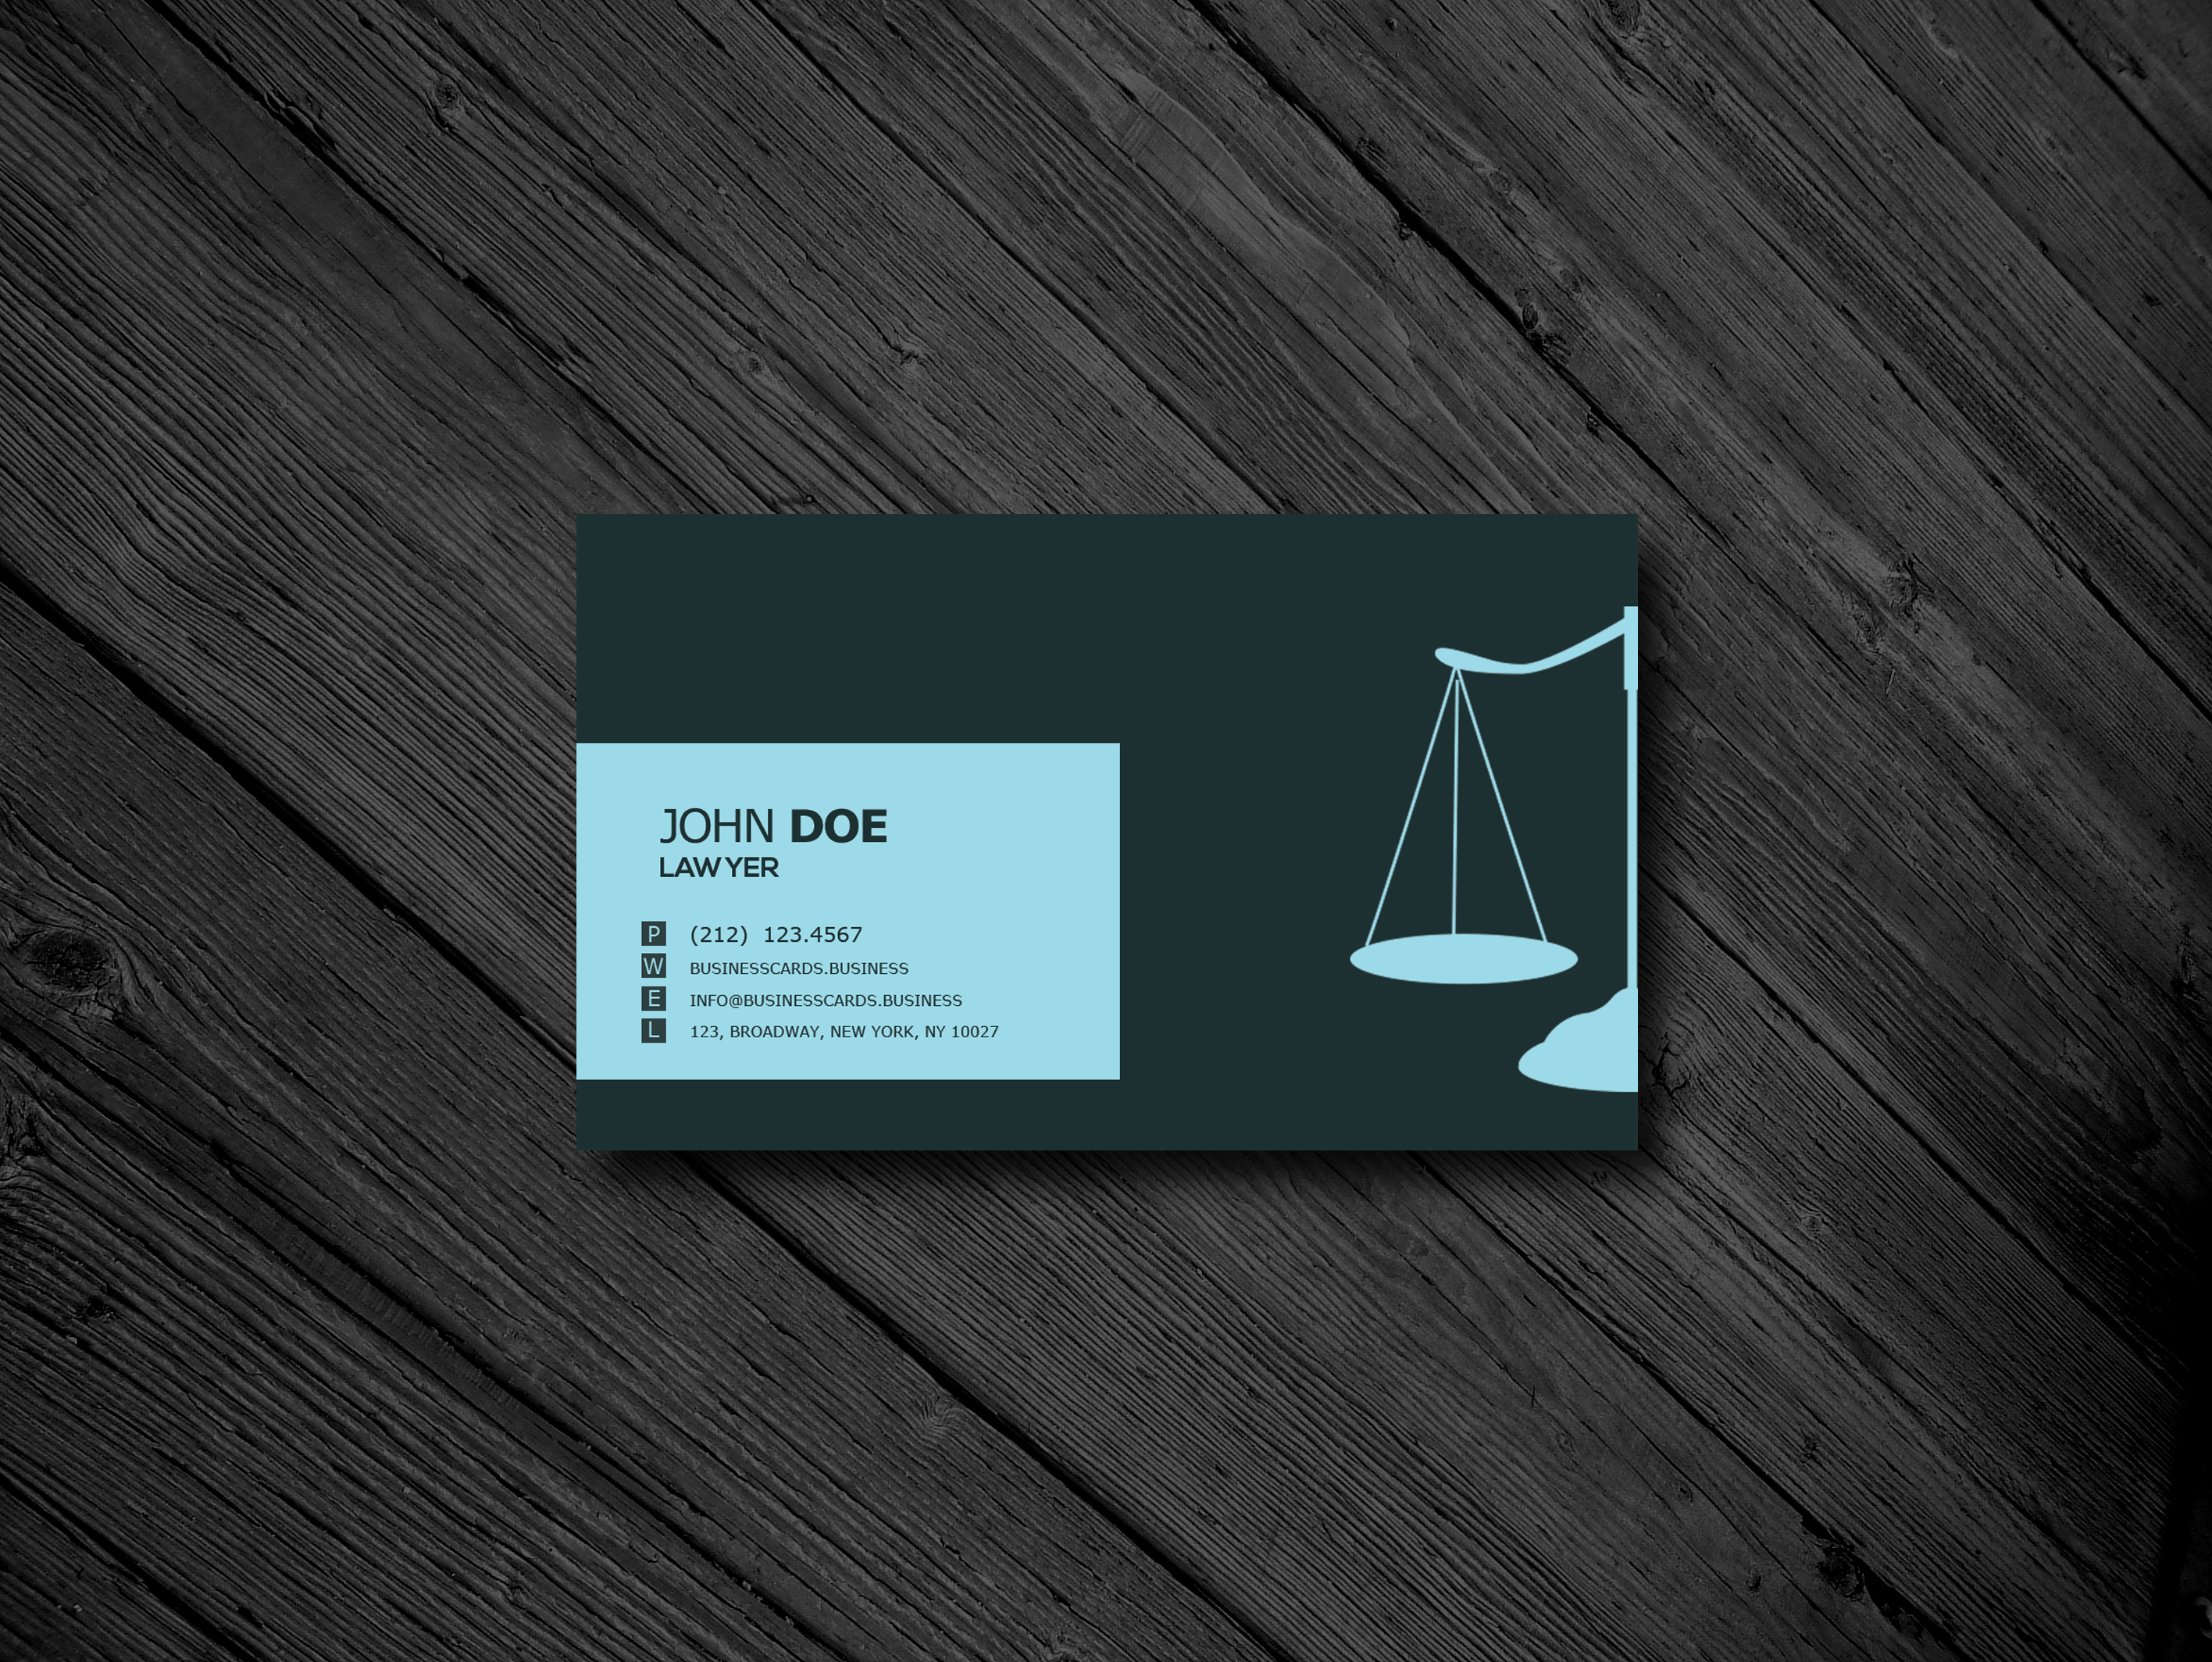 Free business card templates business cards templates free lawyer business card psd template friedricerecipe